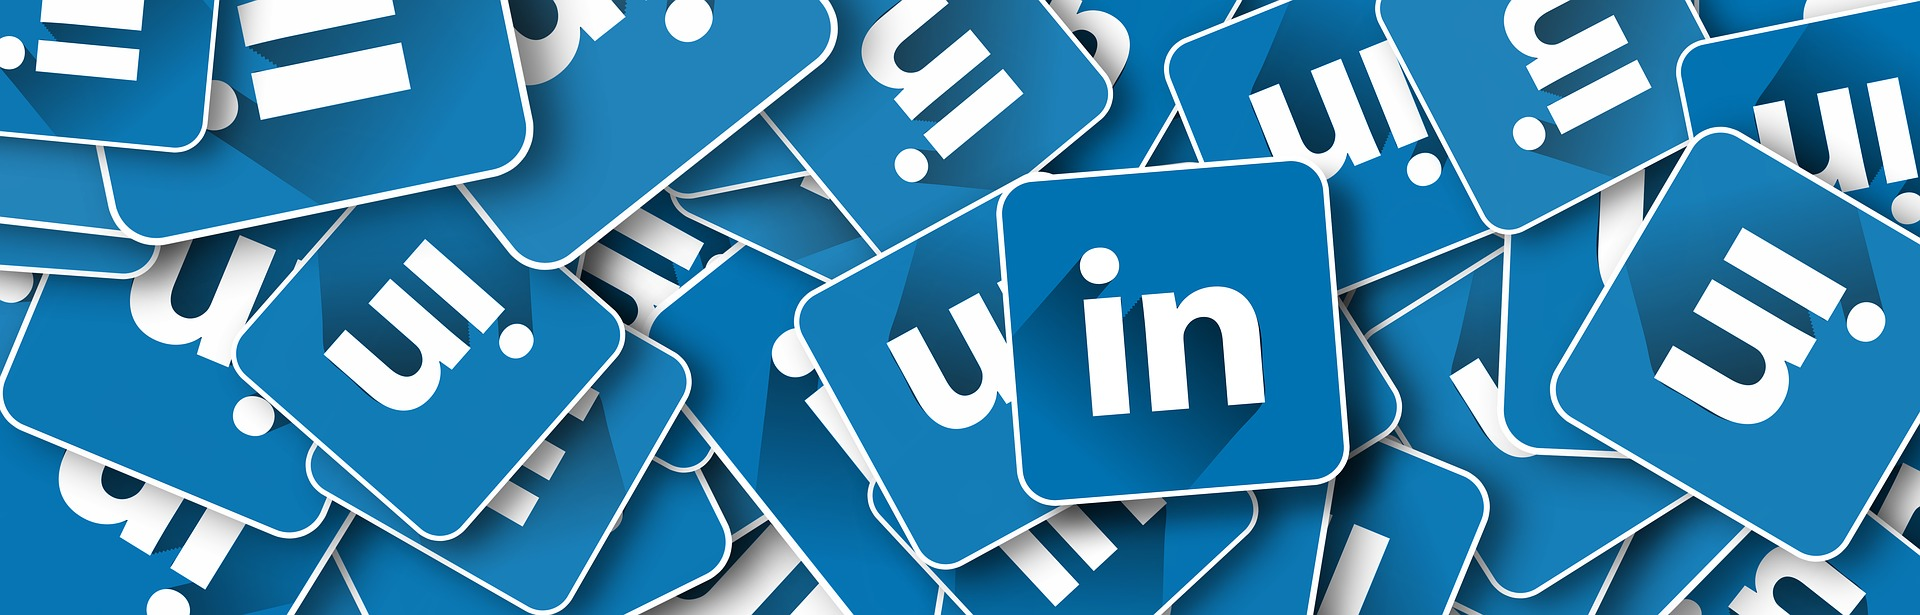 12 ways to improve your LinkedIn profile